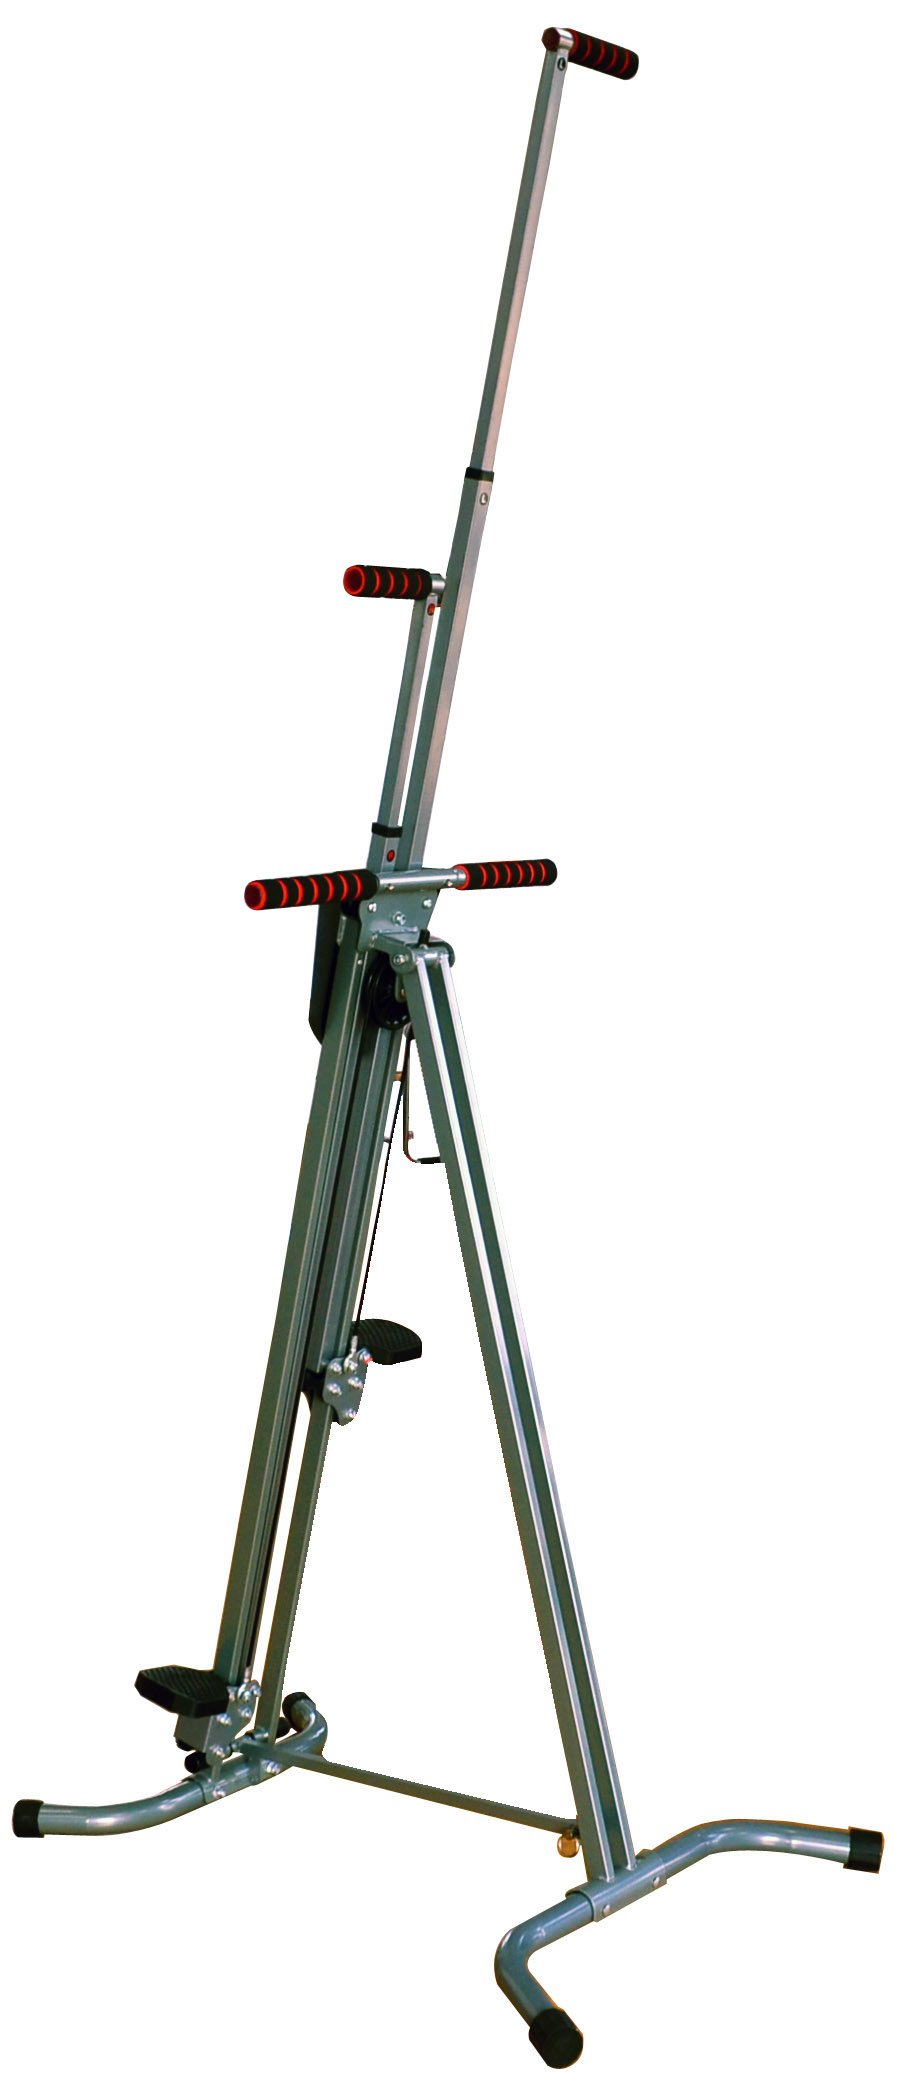 BalanceFrom Vertical Climber with Cast Iron Frame and Digital Display [Newest Version] by BalanceFrom (Image #1)